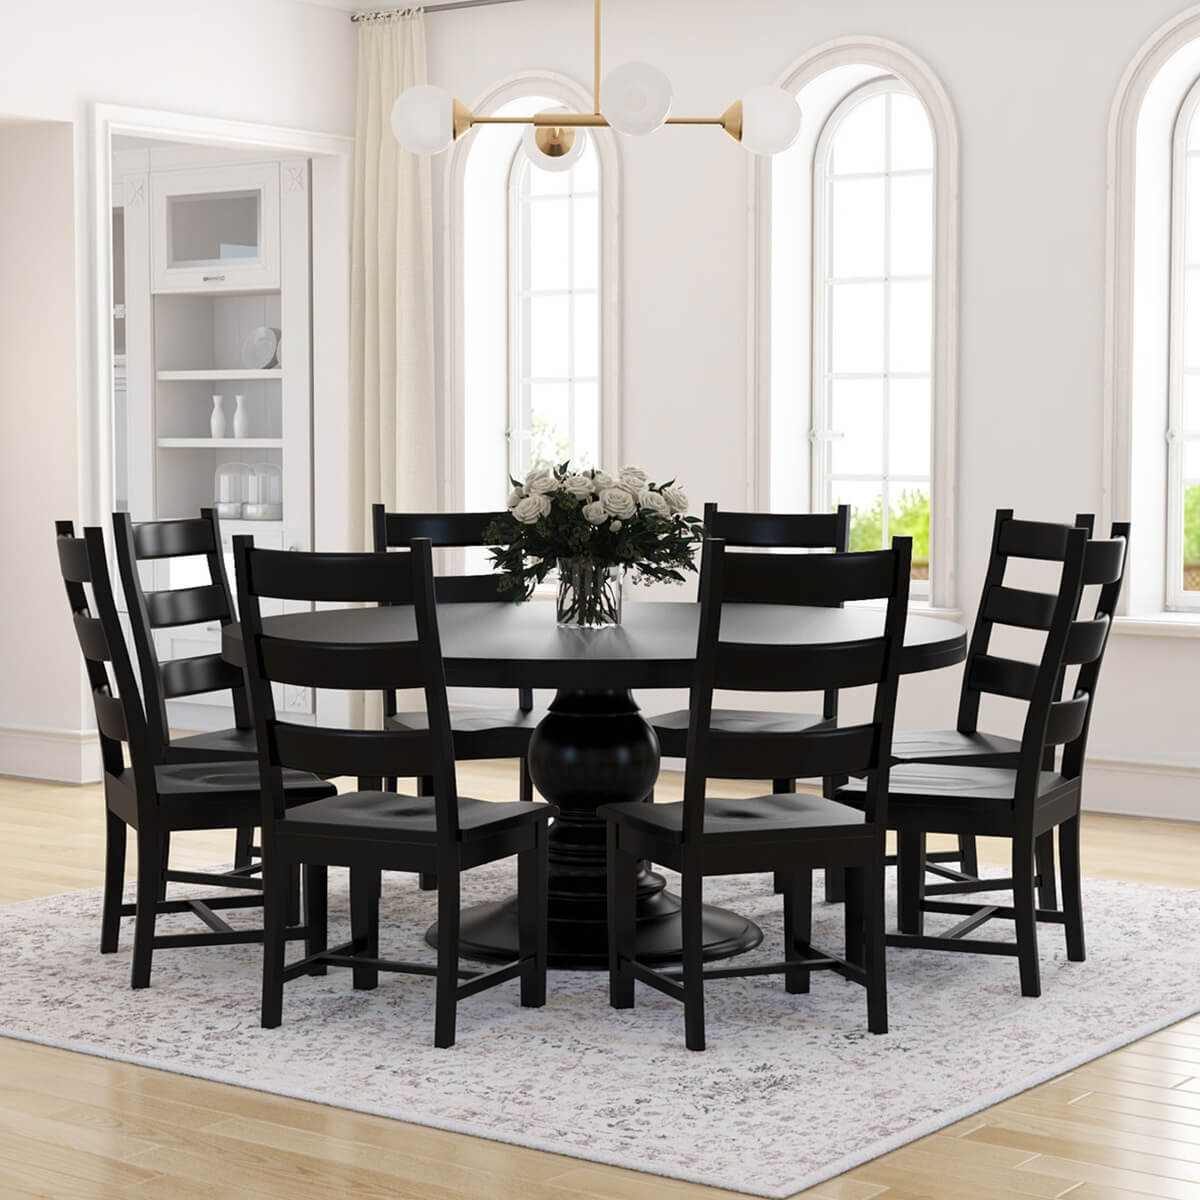 Nottingham rustic solid wood black round dining room table set for Wood dining table set